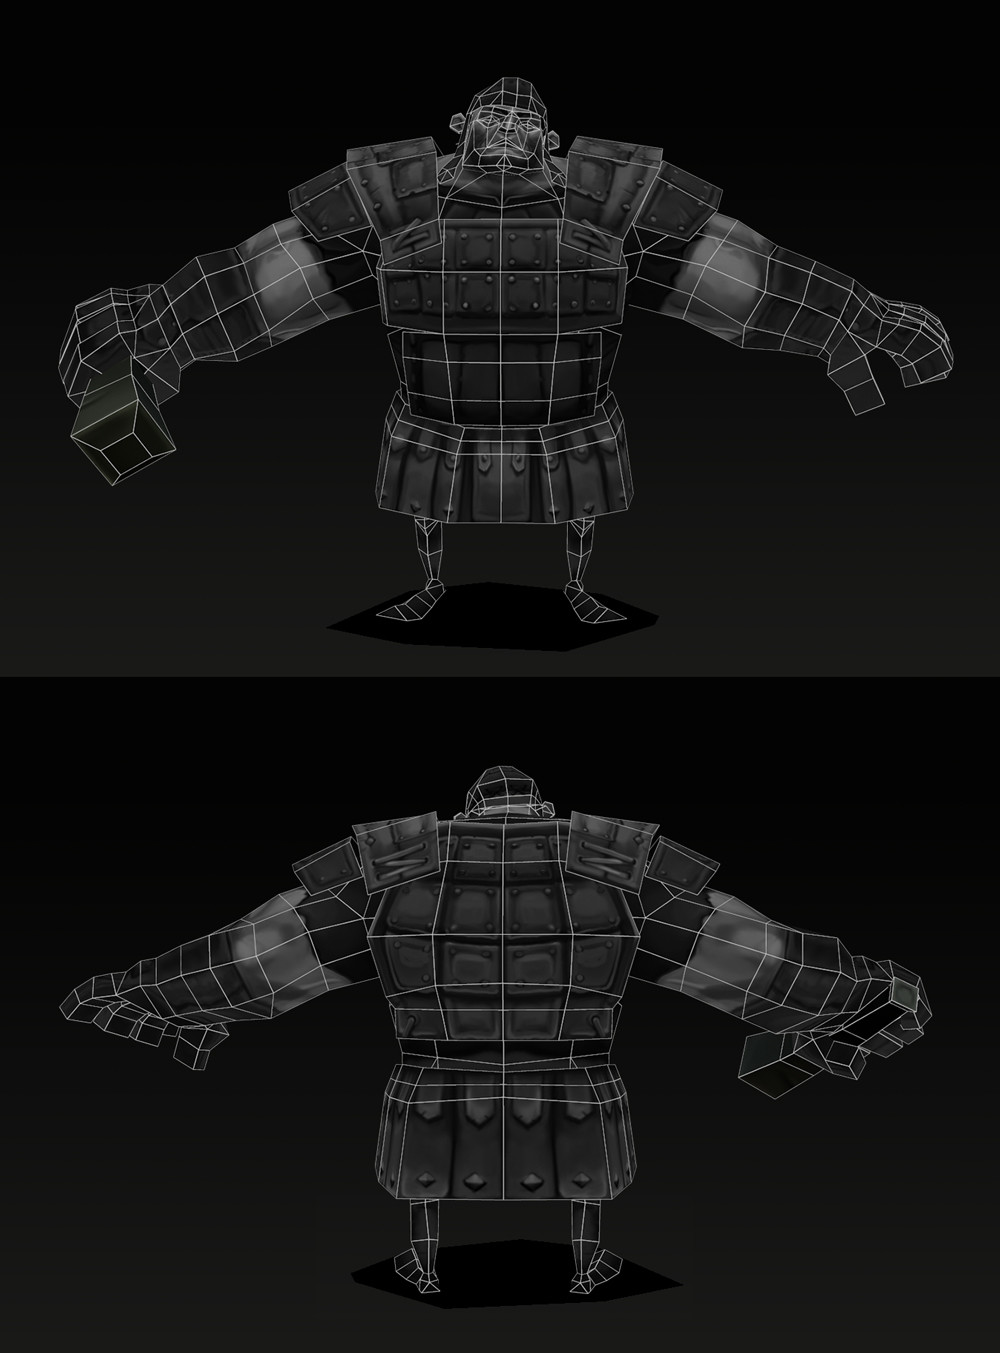 Wireframe view of the character